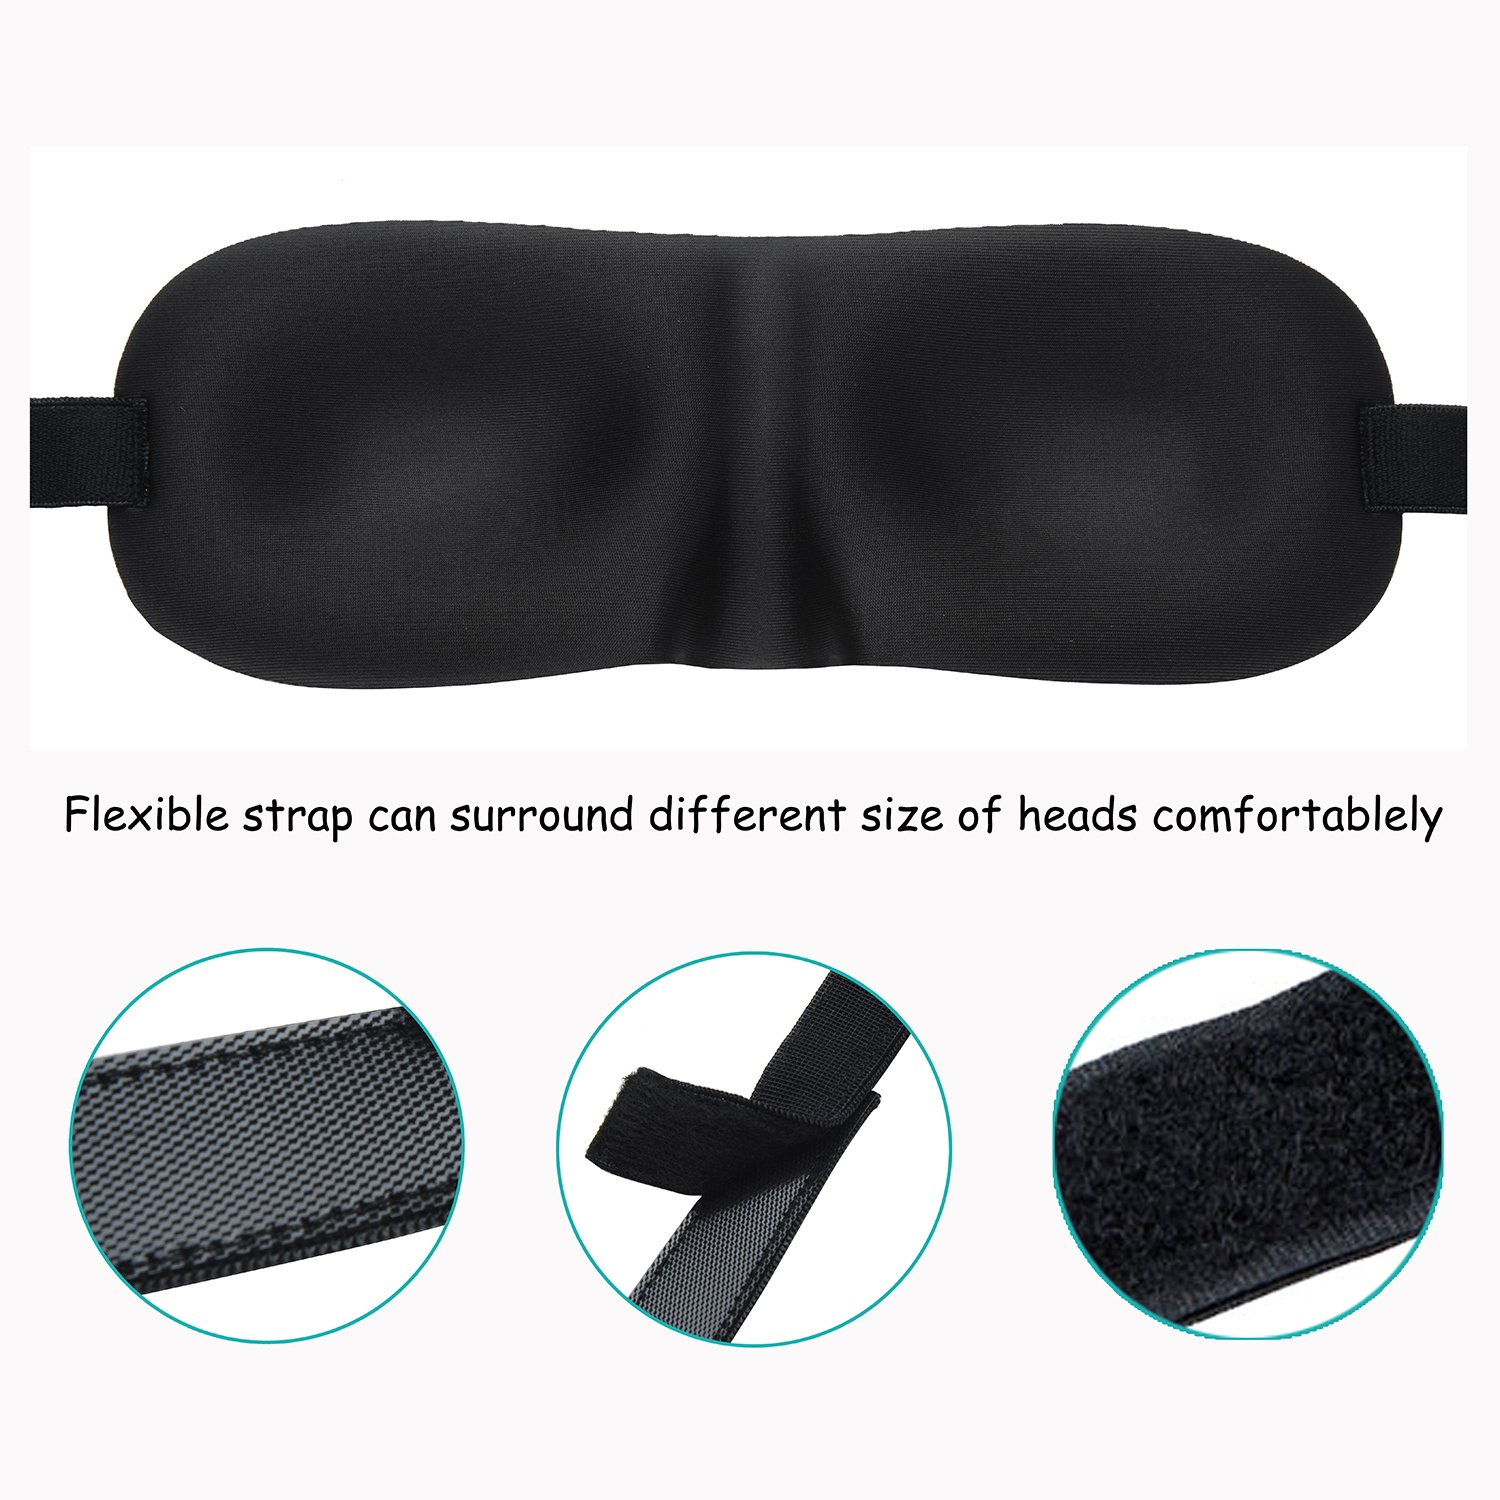 Eye Mask for Sleeping, CHC 3 Pack Sleep Mask with Adjustable Strap 3D Contoured Shape Good Night Eyeshade for Women, Men, Soft Blindfold Great for Travel Naps, Meditation